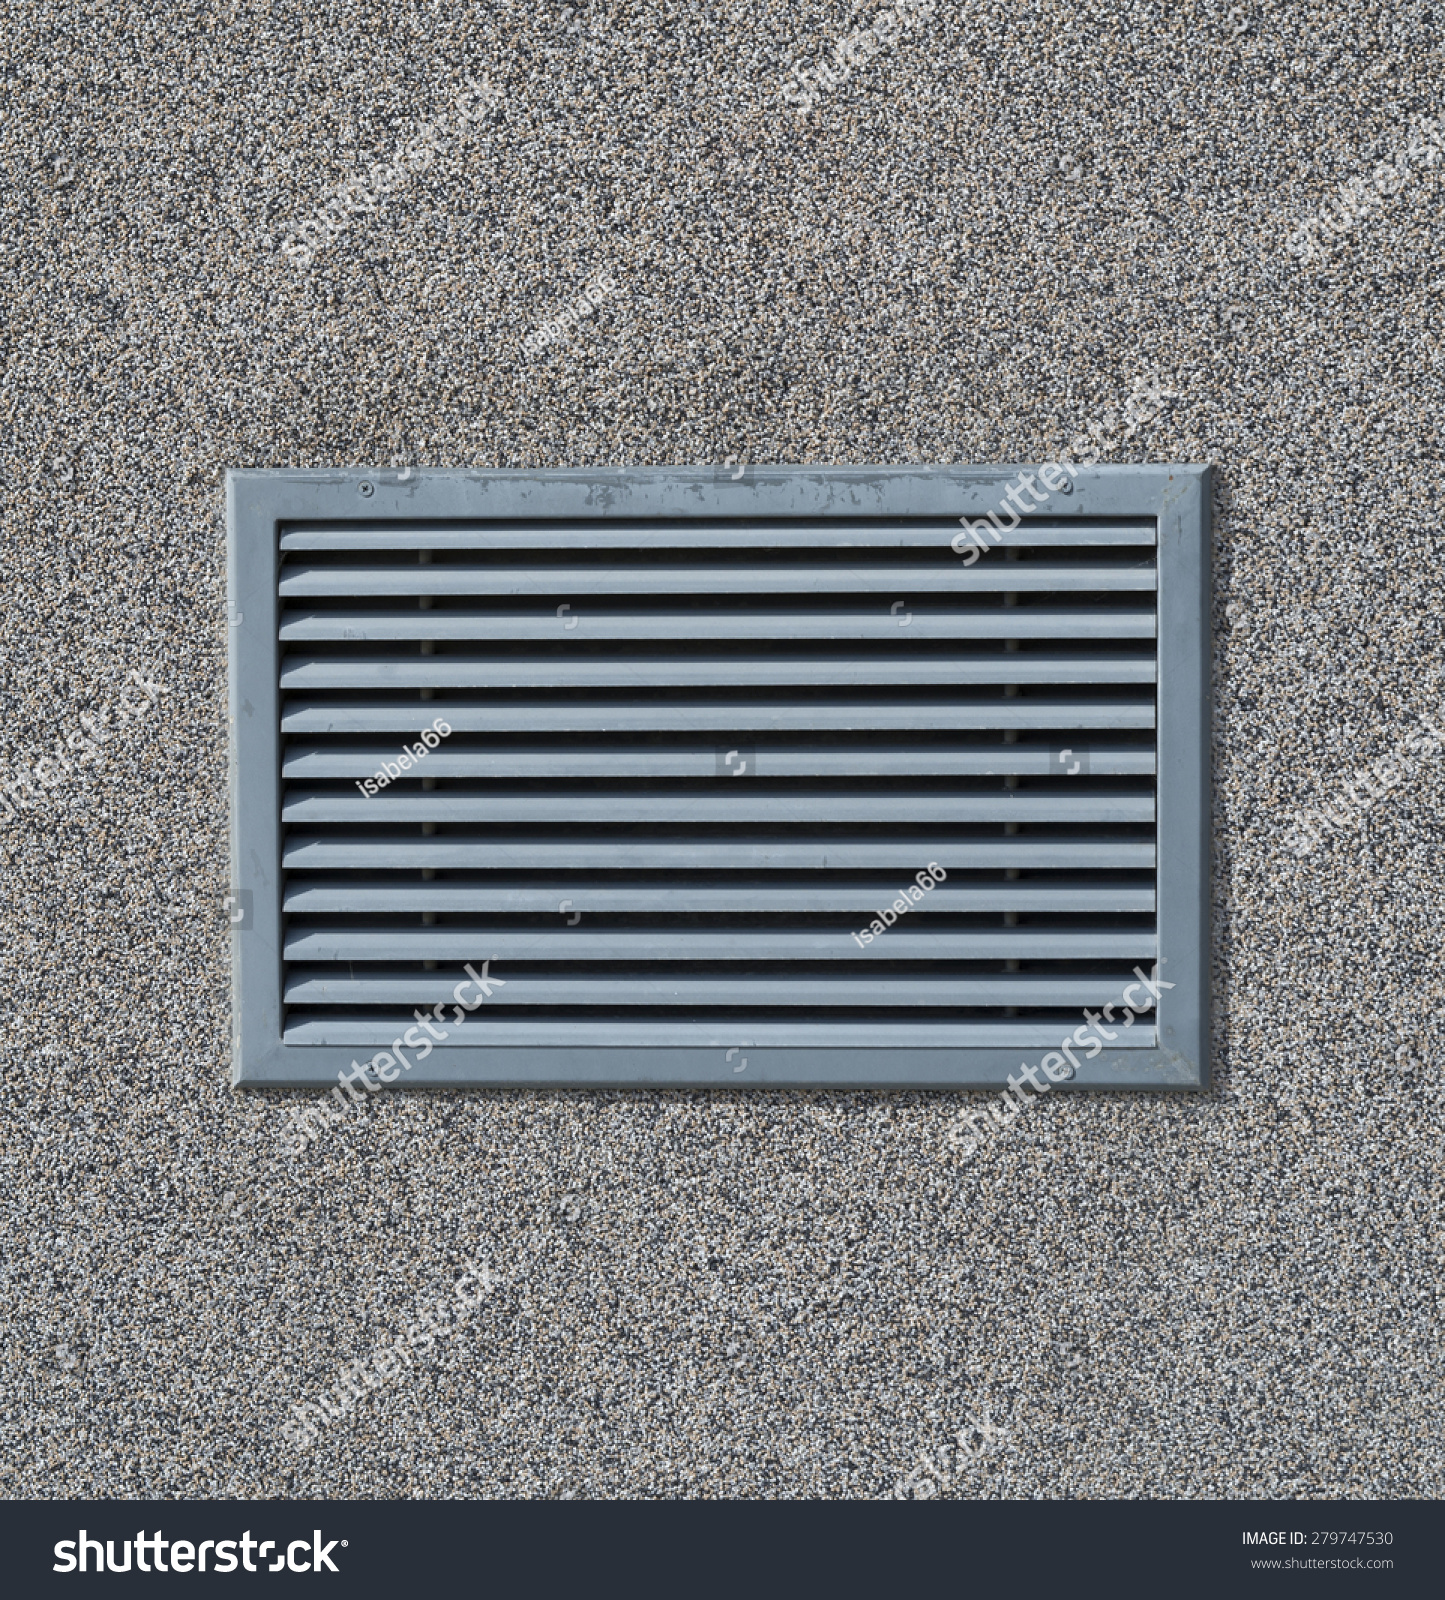 #536778 New Air Conditioning Vent On Wall Closeup Stock Photo  Highly Rated 4589 Hvac Wall Vents wallpapers with 1445x1600 px on helpvideos.info - Air Conditioners, Air Coolers and more